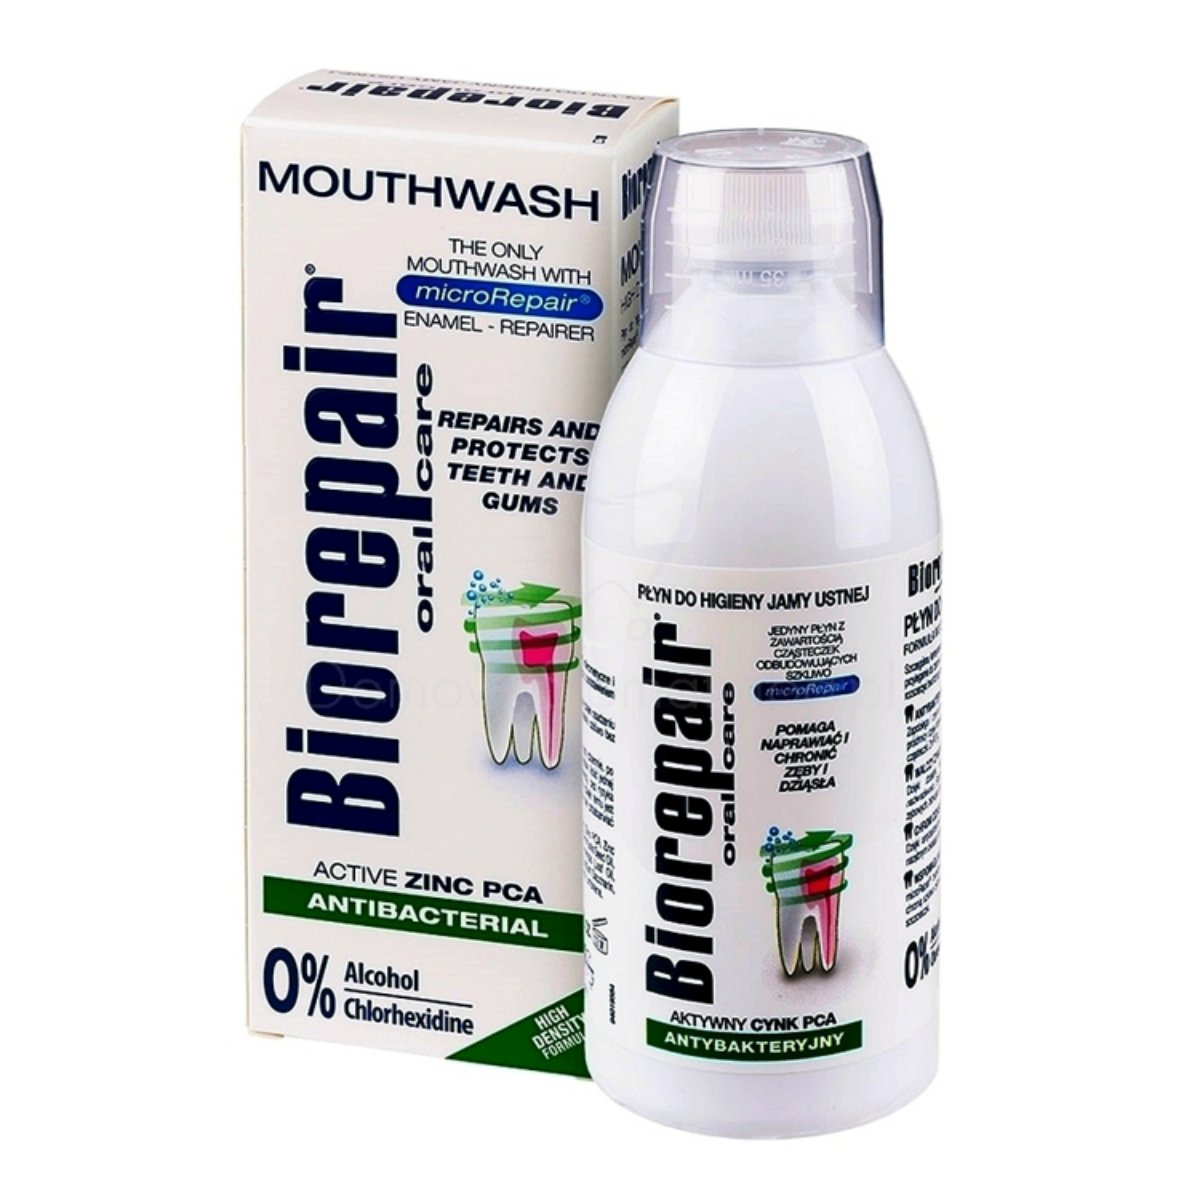 BioRepair Concentrated Mouthwash-Repairs Enamel 500ml mineralize enamel protection fill holes gradually microparticle repairs toothrevents plaque and tartar from forming - protect helping to prevent decay before it can start